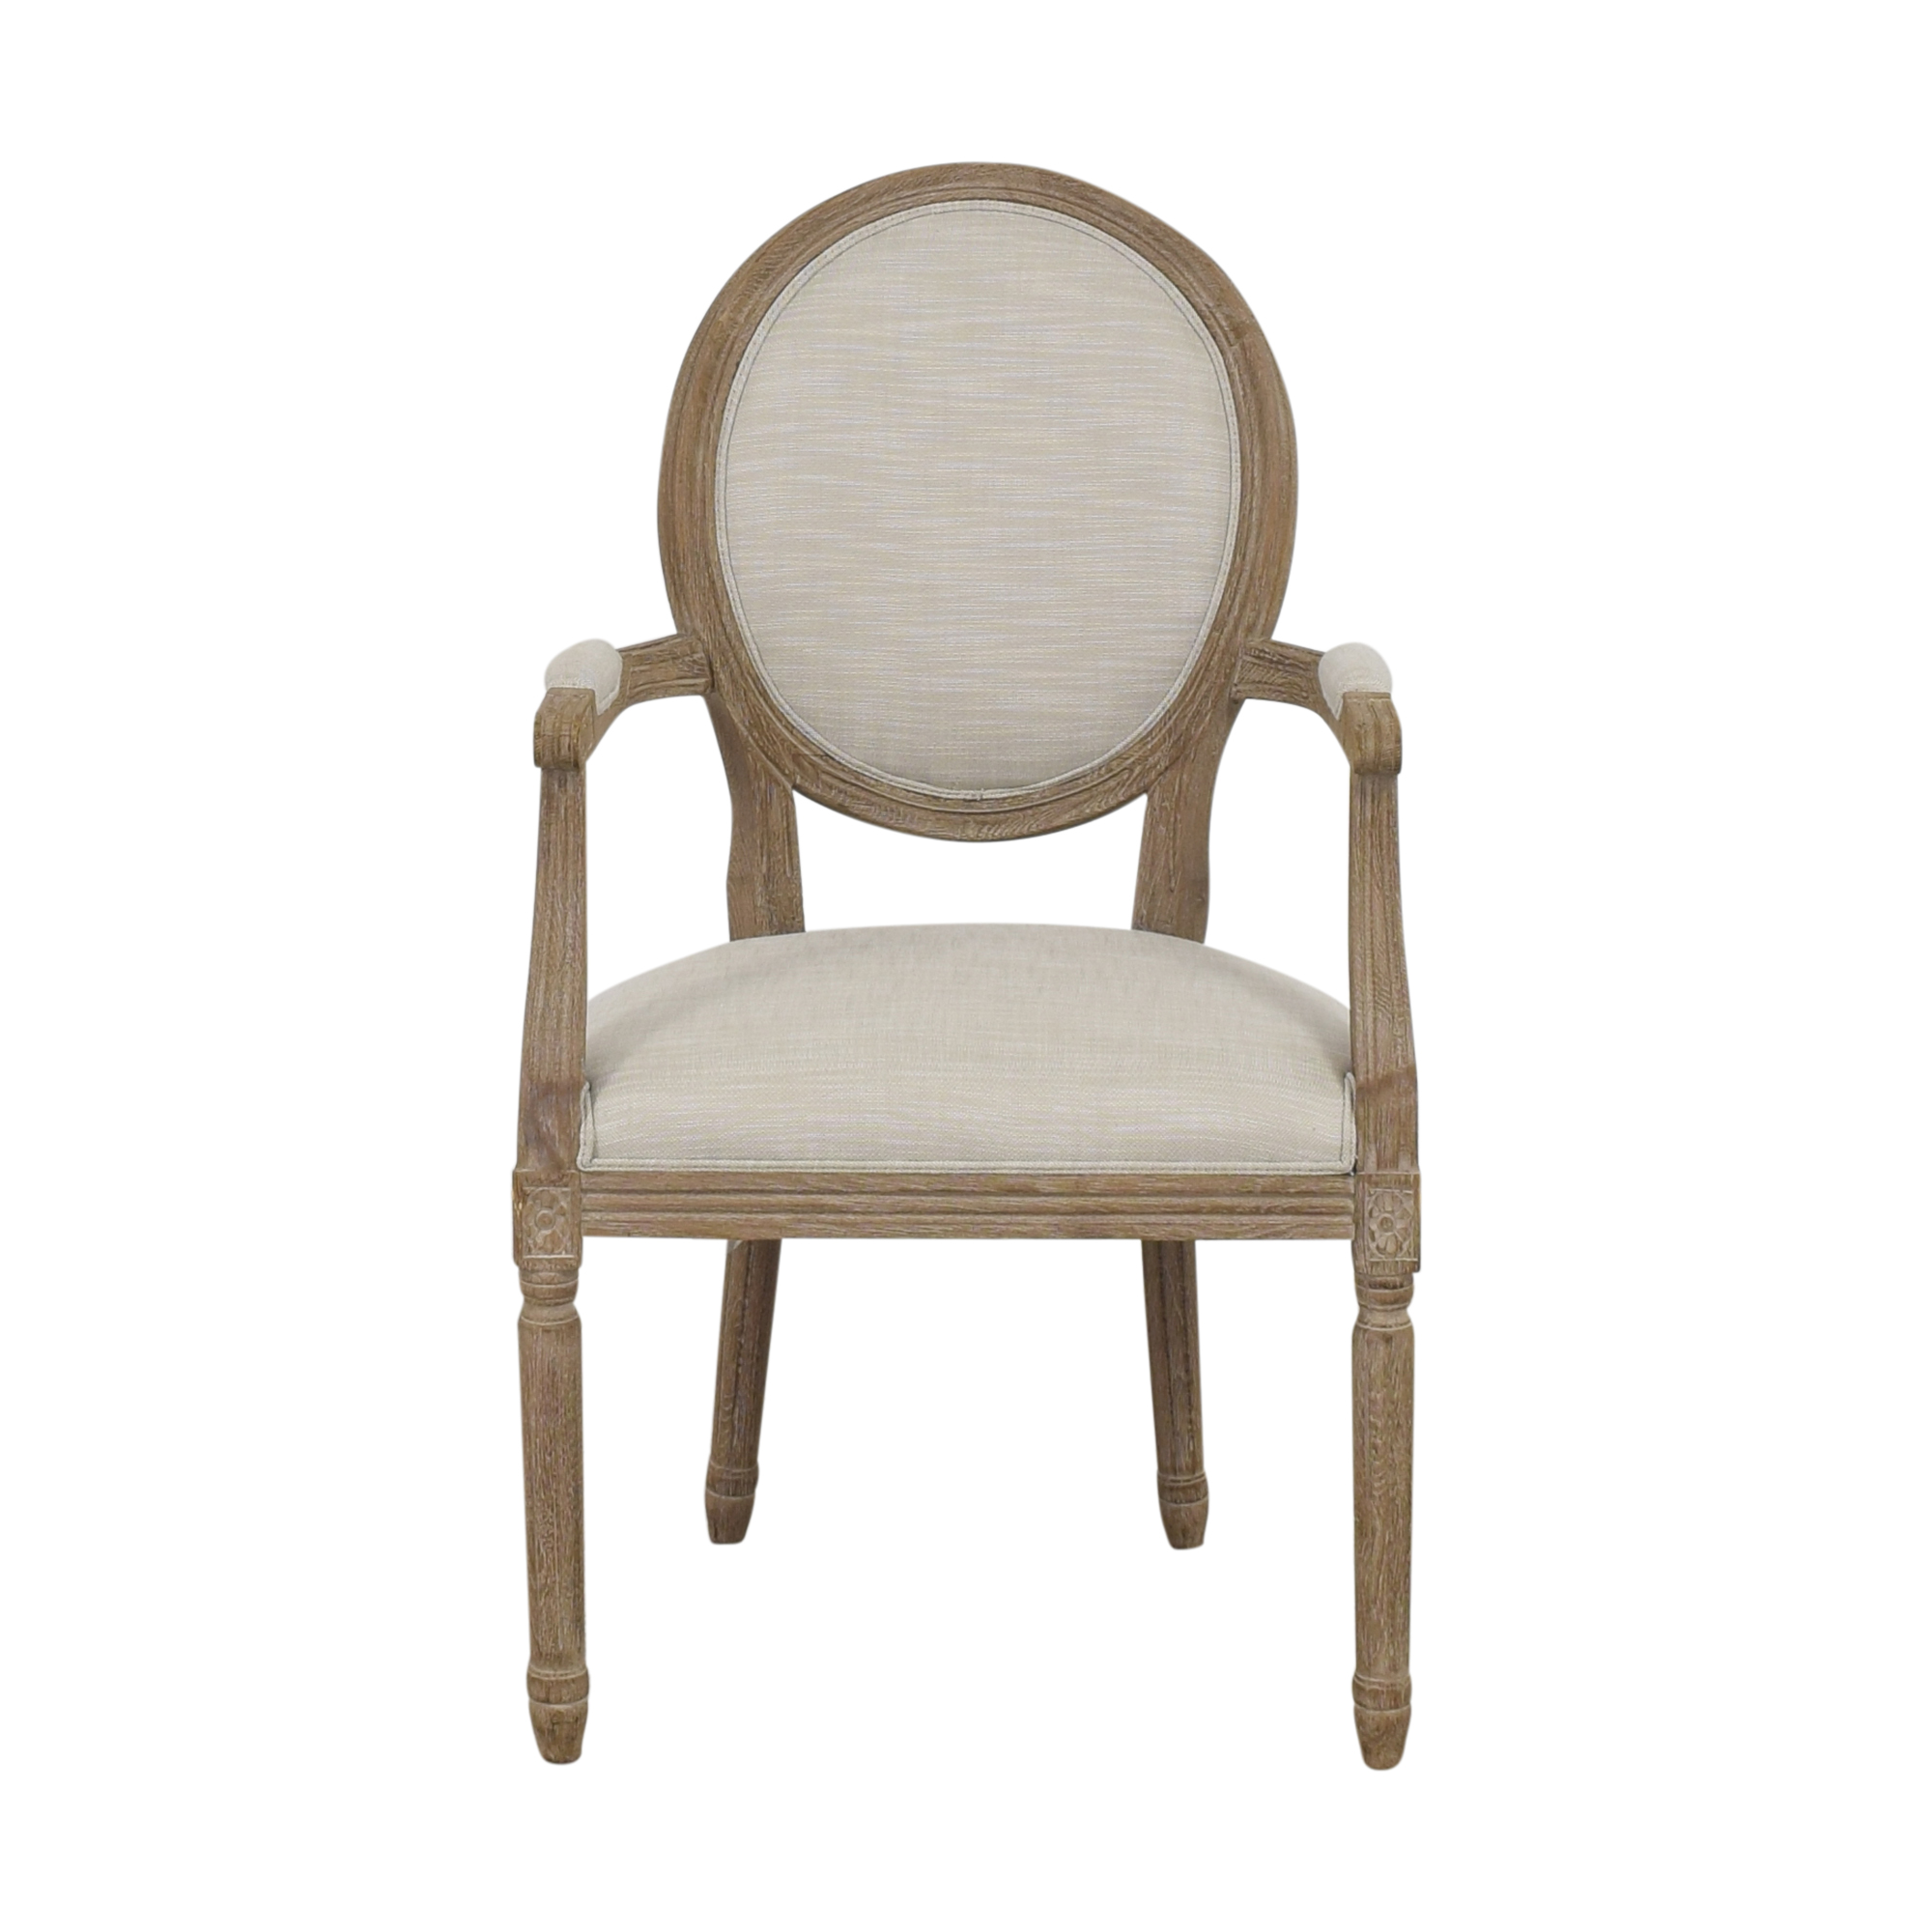 Restoration Hardware Restoration Hardware Vintage French Round Armchair Dining Chairs